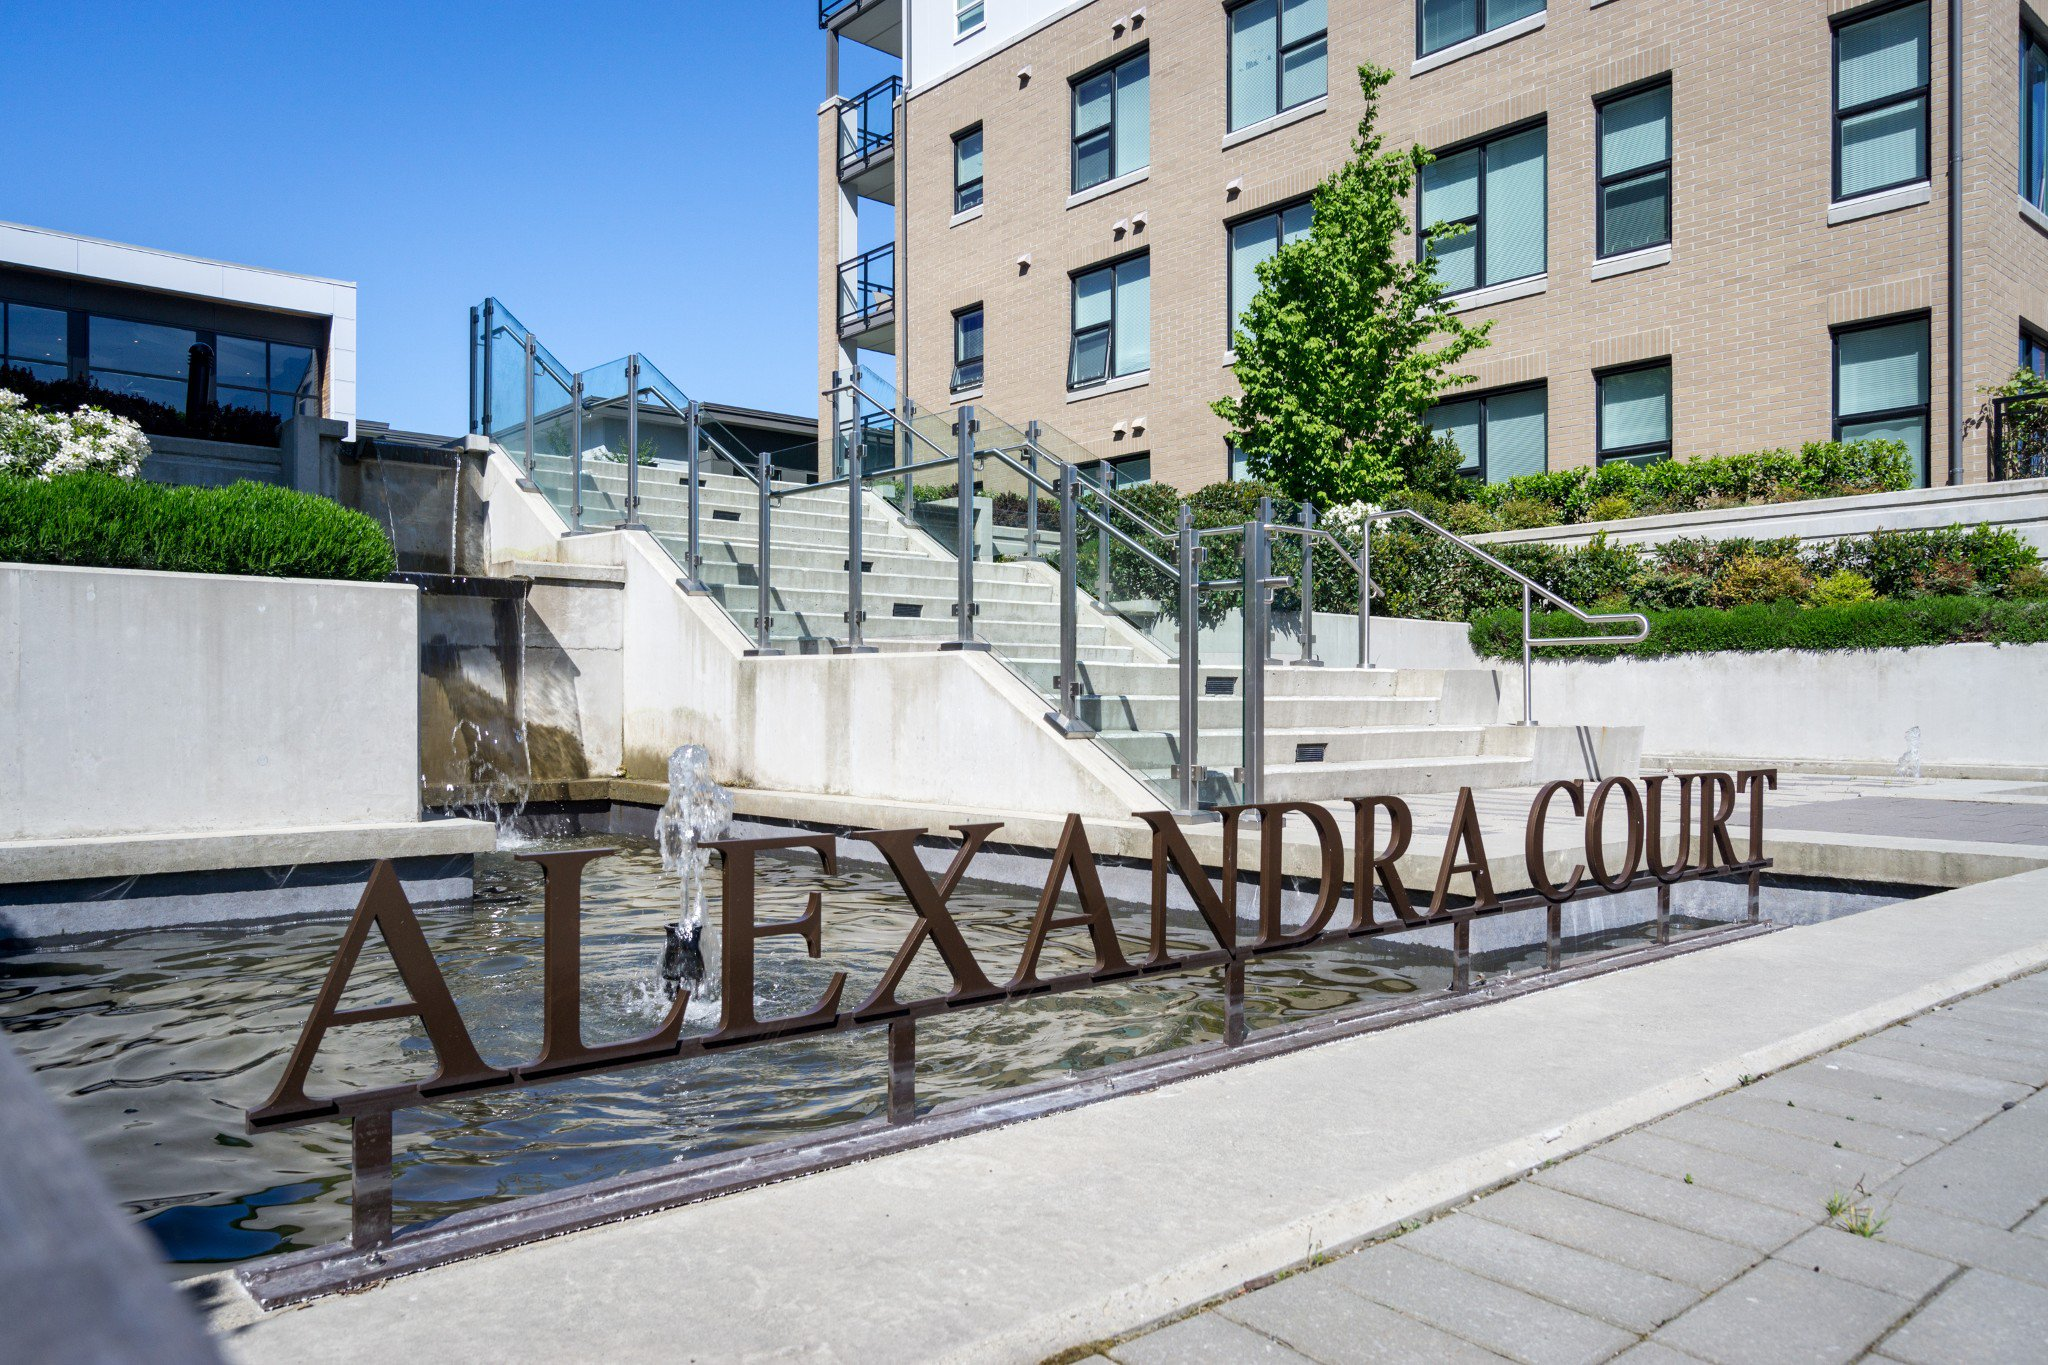 """Photo 39: Photos: 303 9311 ALEXANDRA Road in Richmond: West Cambie Condo for sale in """"ALEXANDRA COURT"""" : MLS®# R2347629"""